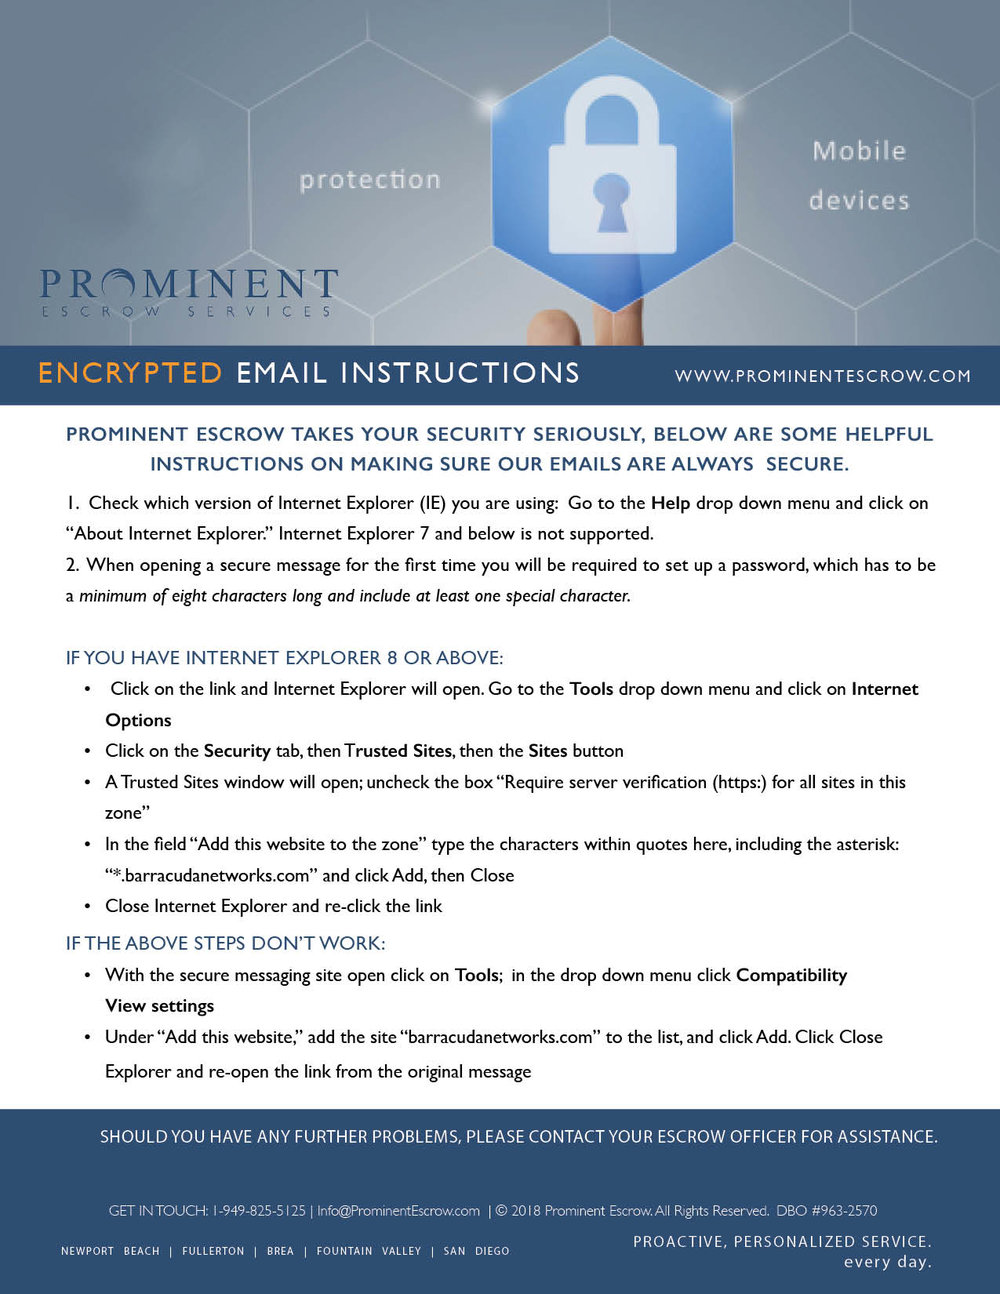 Encrypted Emails_Prominent Escrow